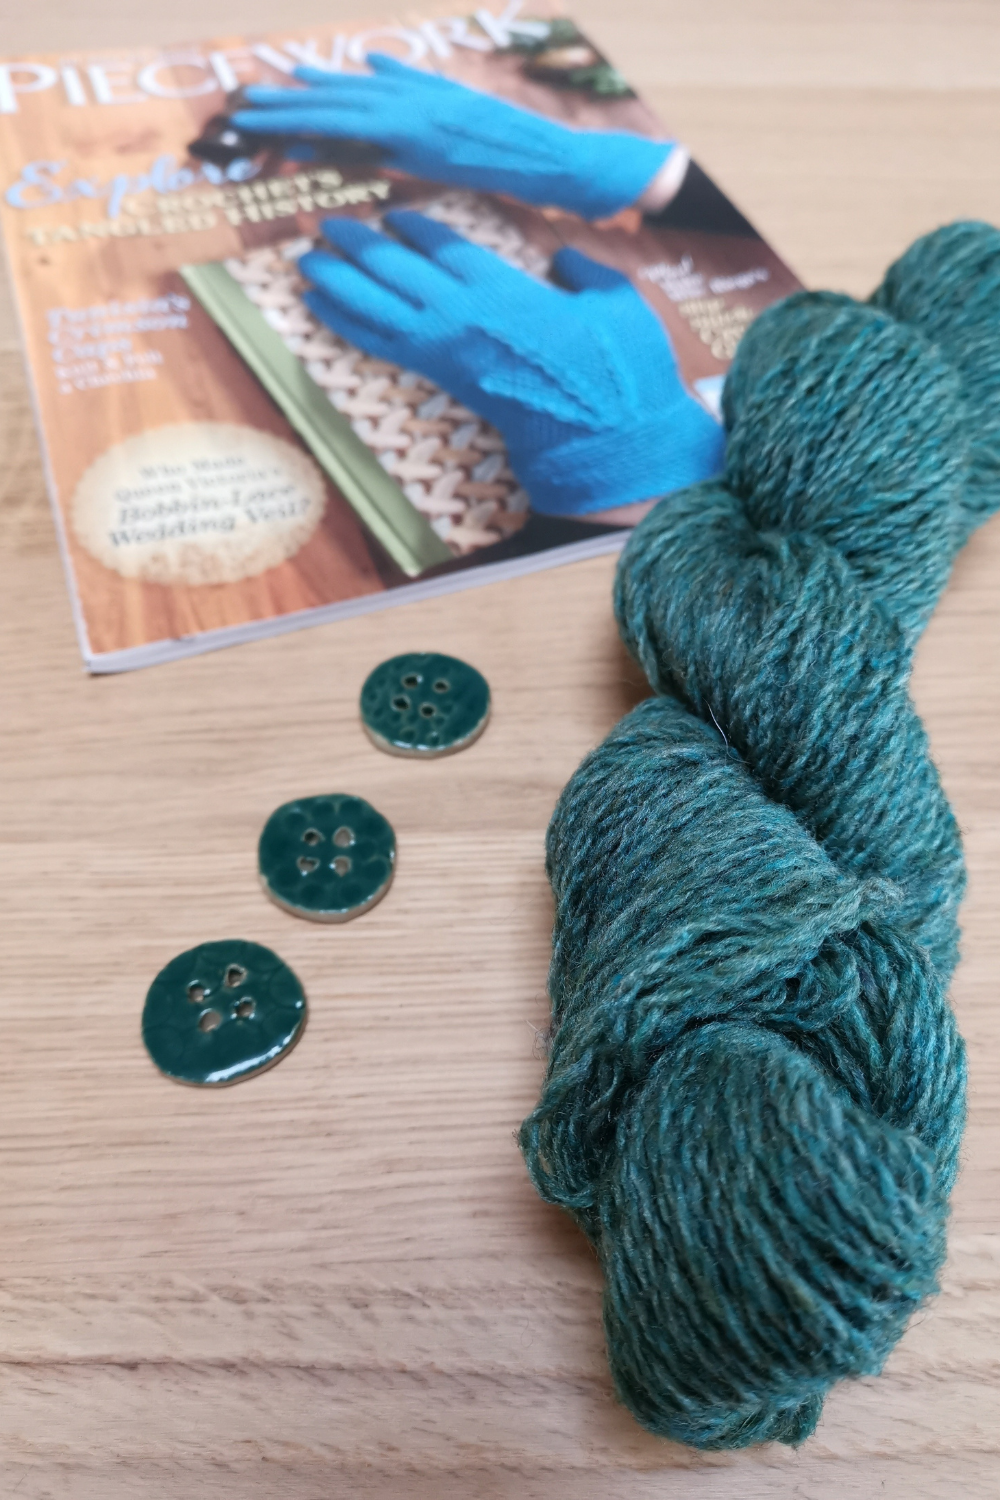 skein of jade green plump wool beside the magazine 'Piecework' and three handmade ceramic buttons in the same jade green.